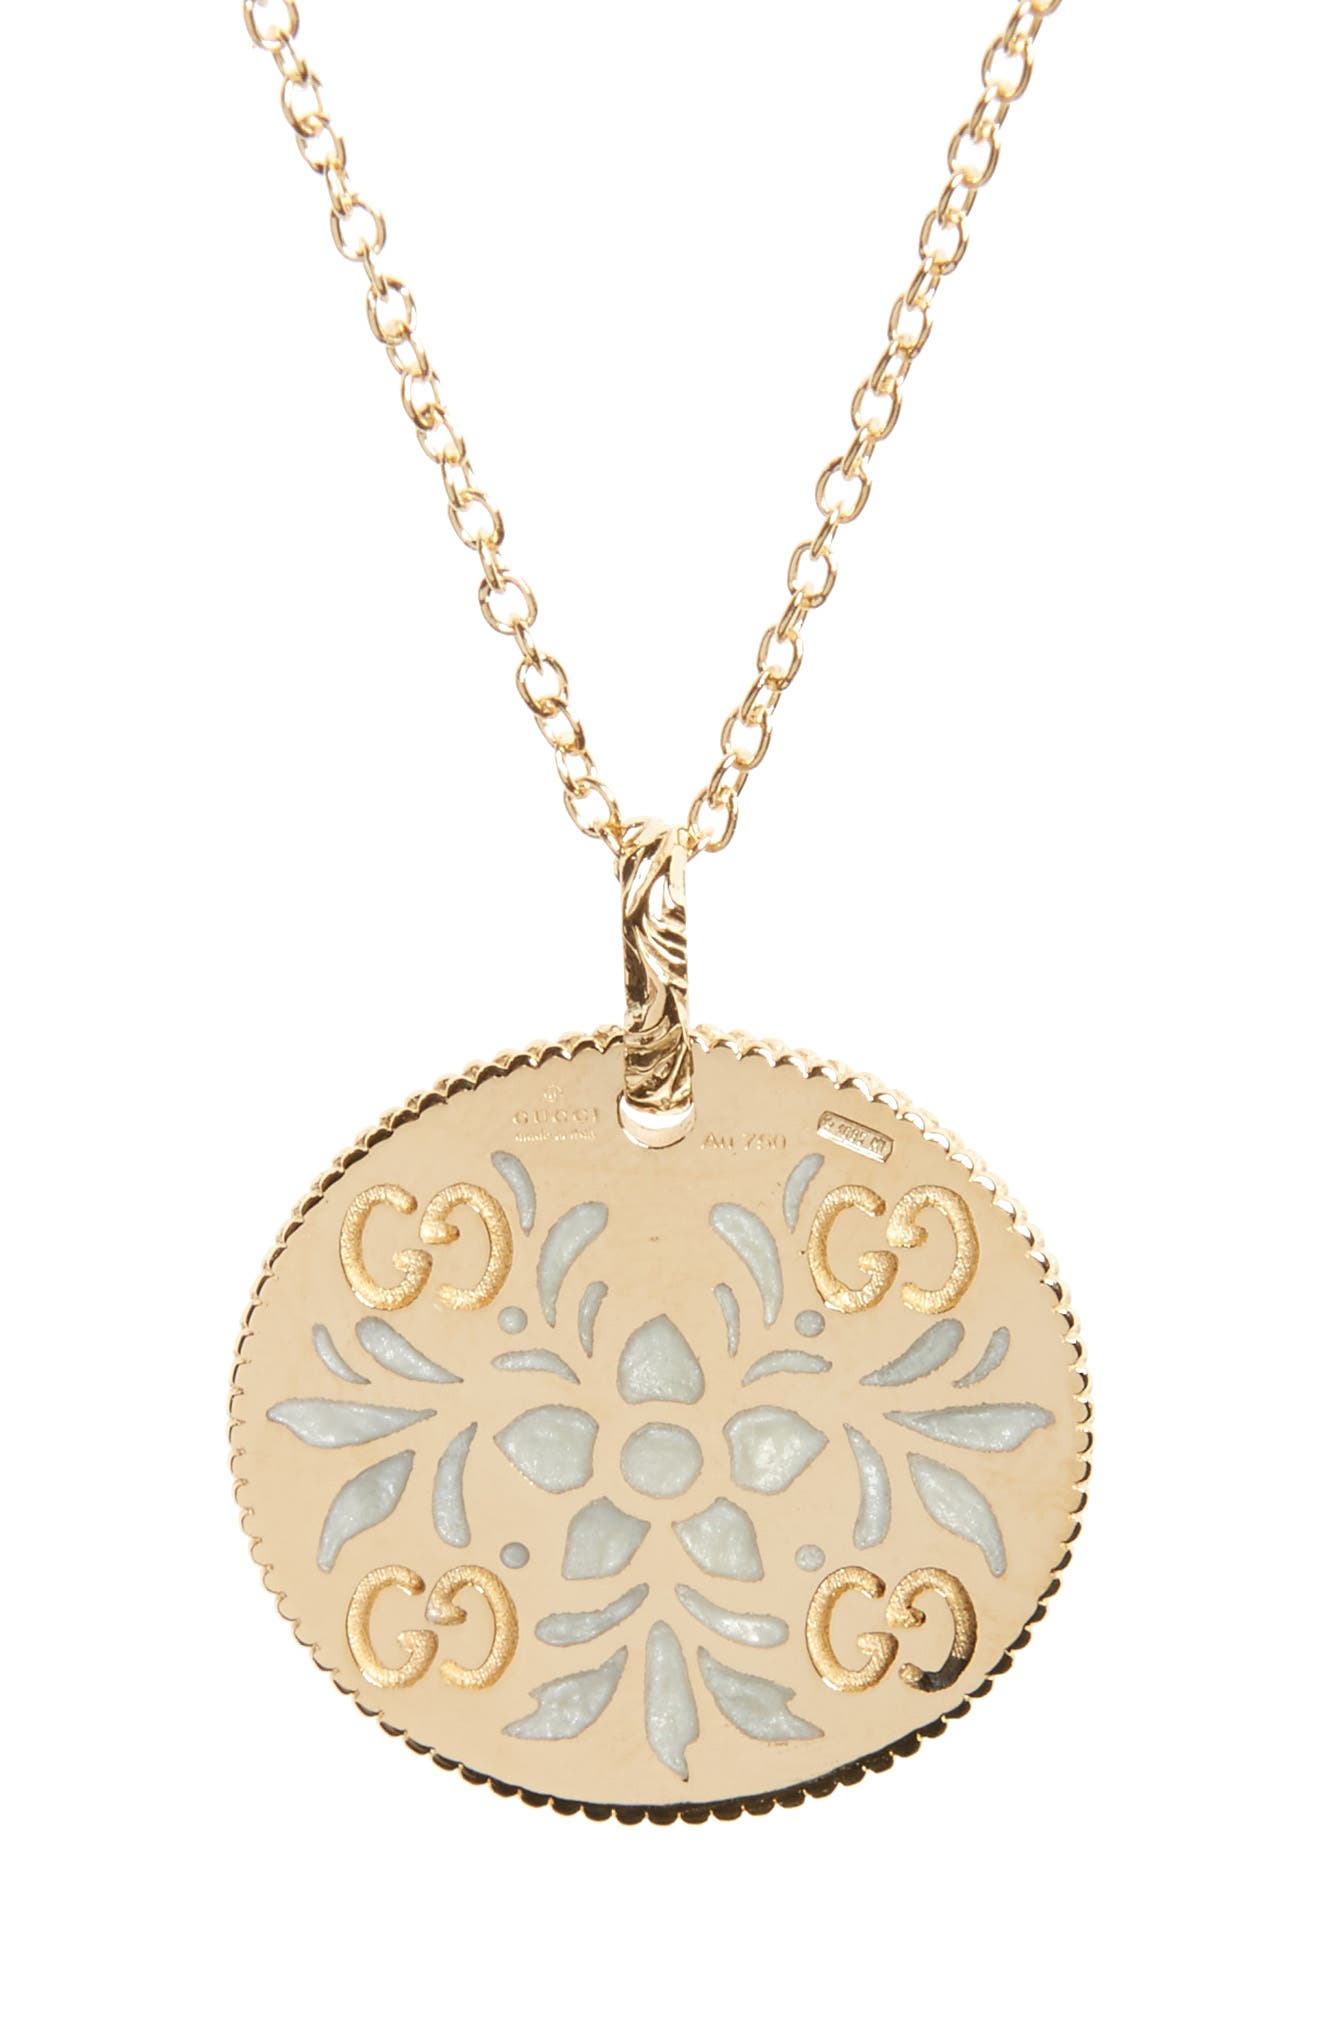 a85463c6 gucci necklaces fine jewelry for women - Buy best women's gucci ...